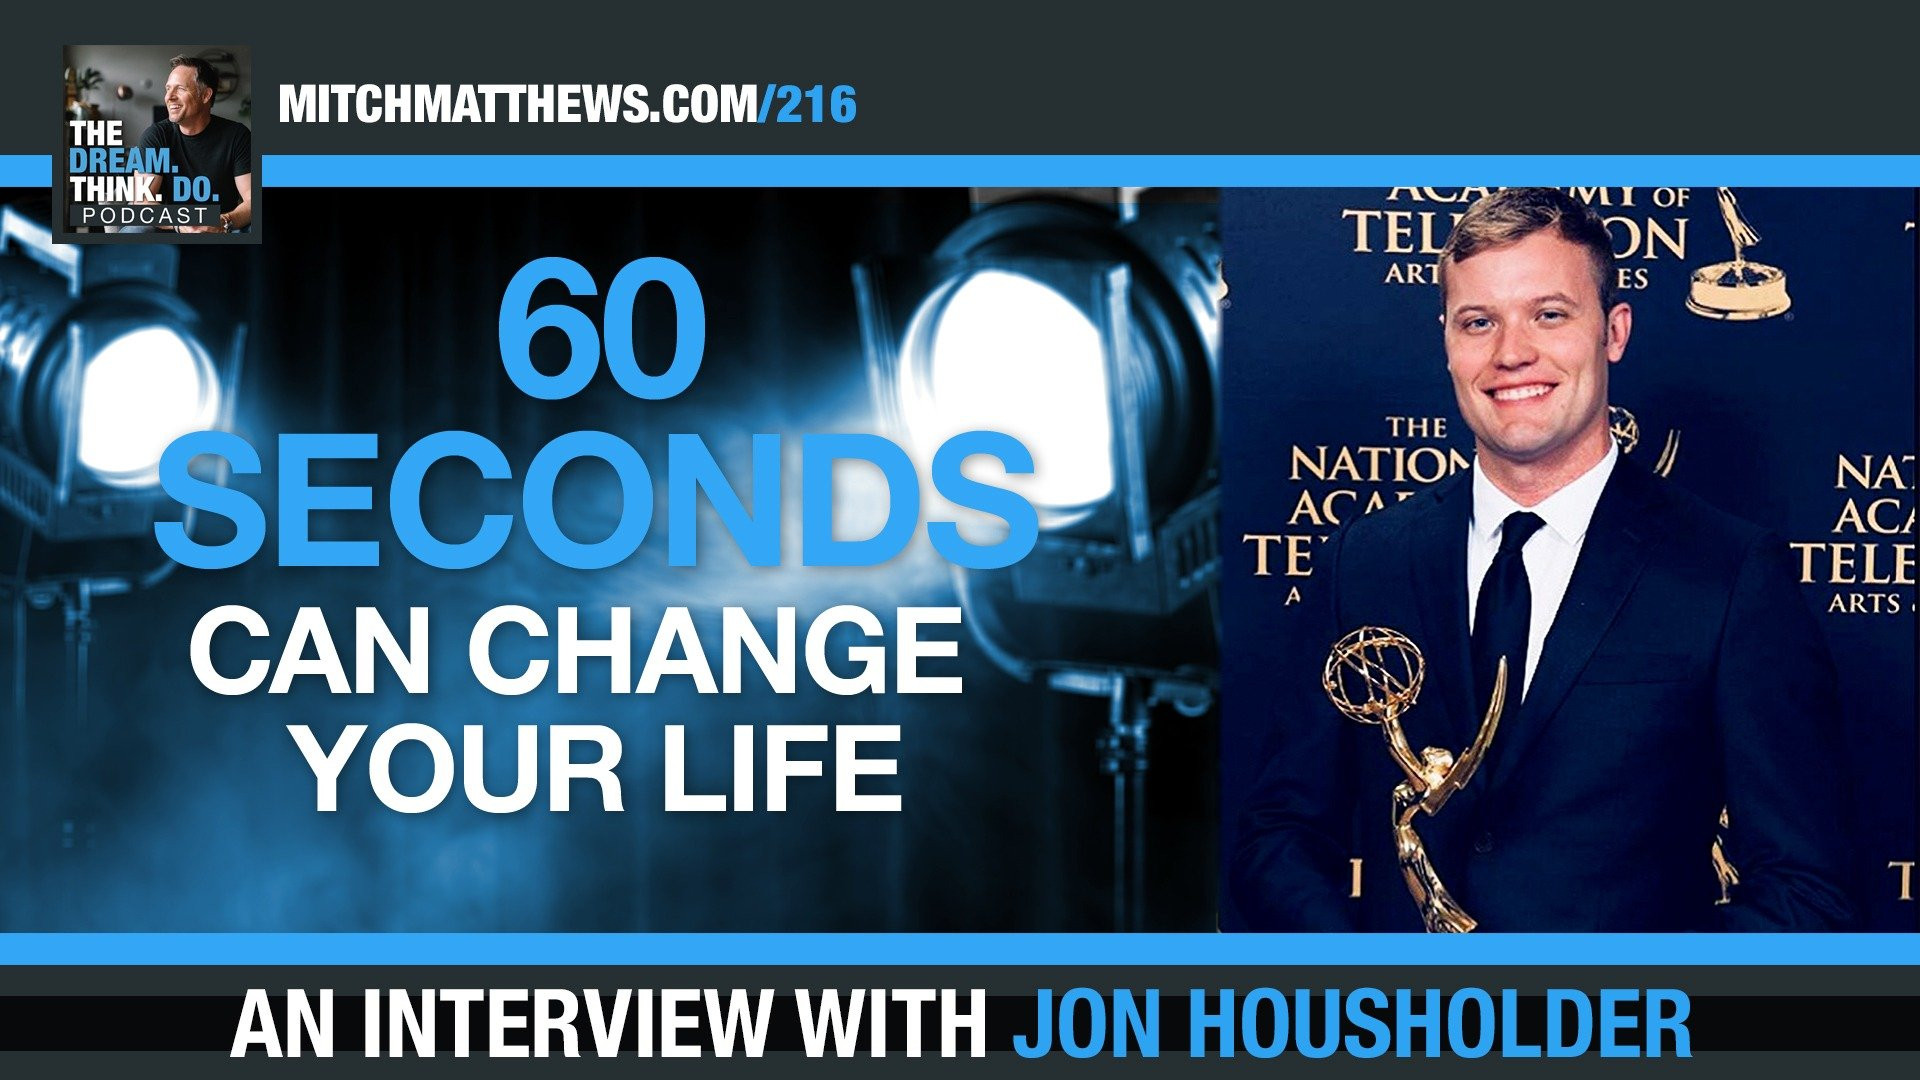 60 Seconds Can Change Your Life! An Interview with Jon Housholder